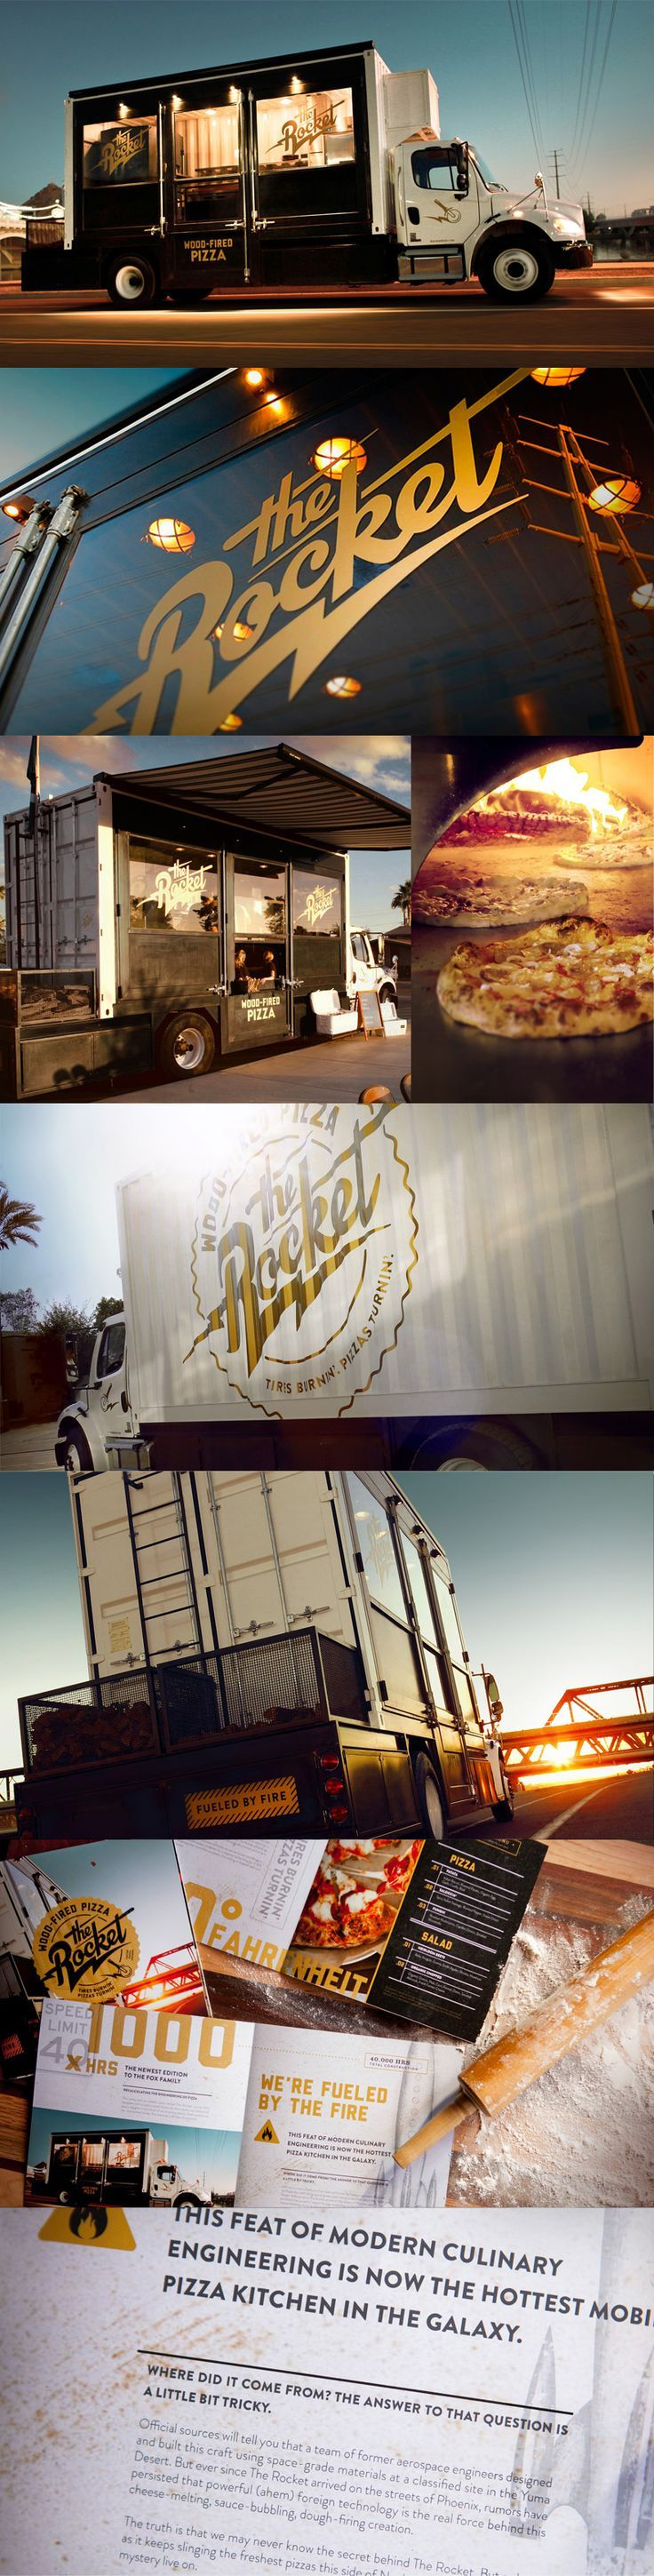 The Rocket. Wood-fired pizza in a truck.                                                                                                                                                                                 Más